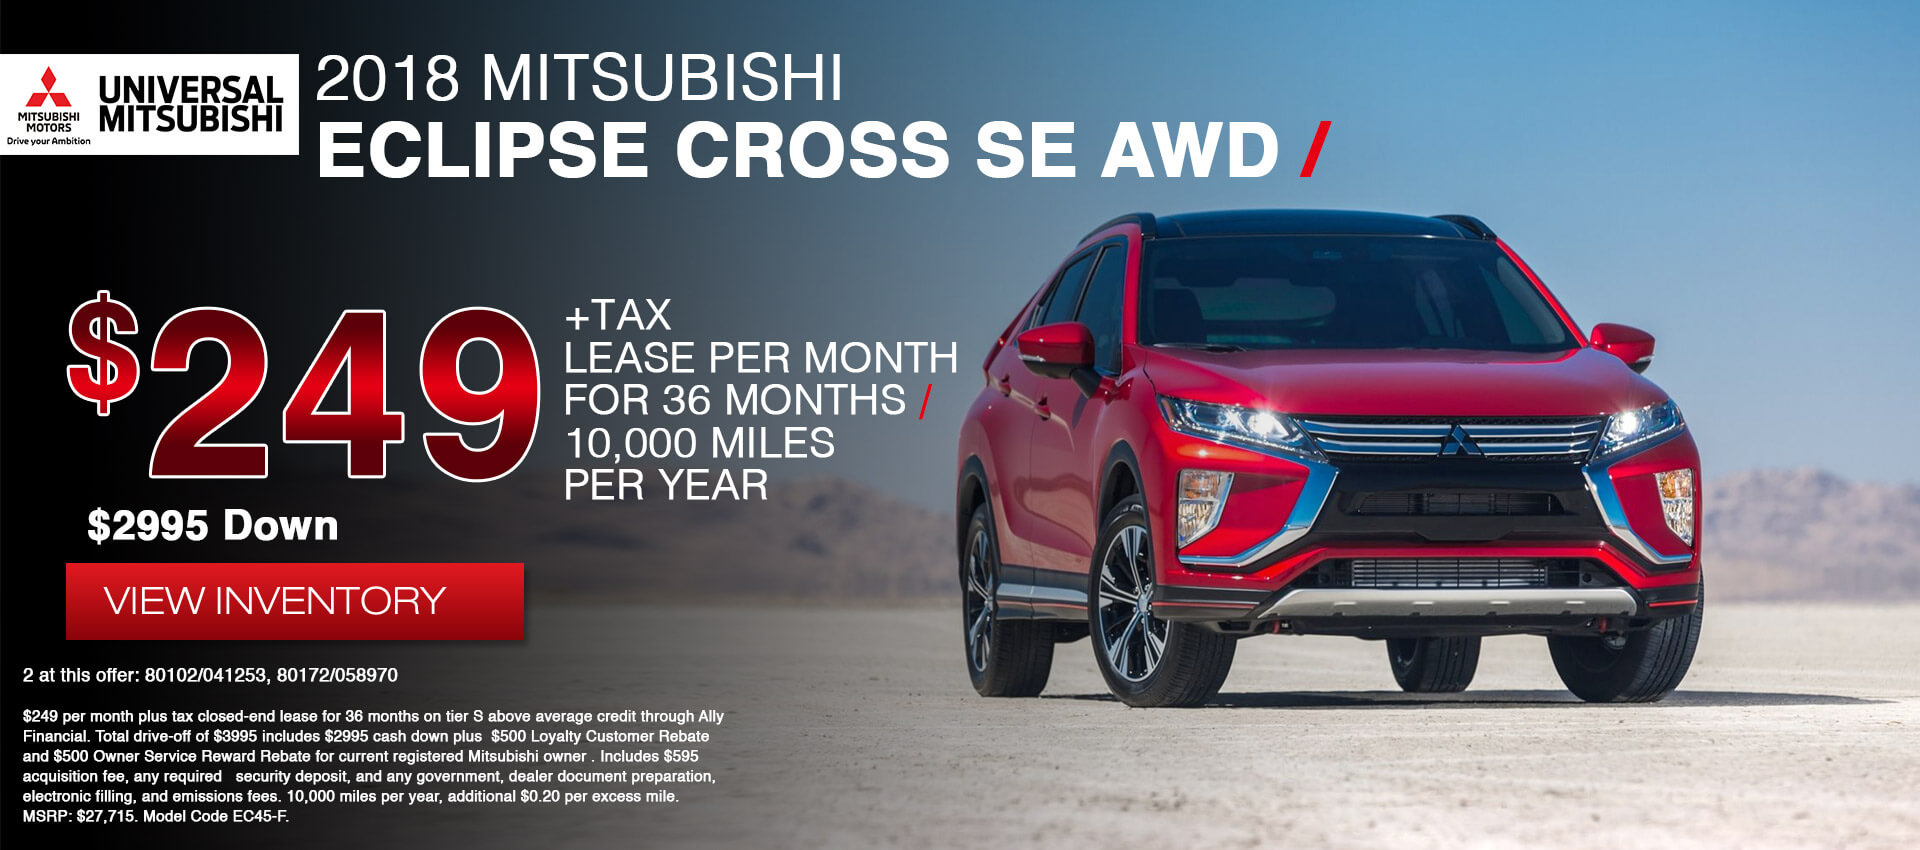 Mitsubishi Eclipse Cross SE $249 Lease